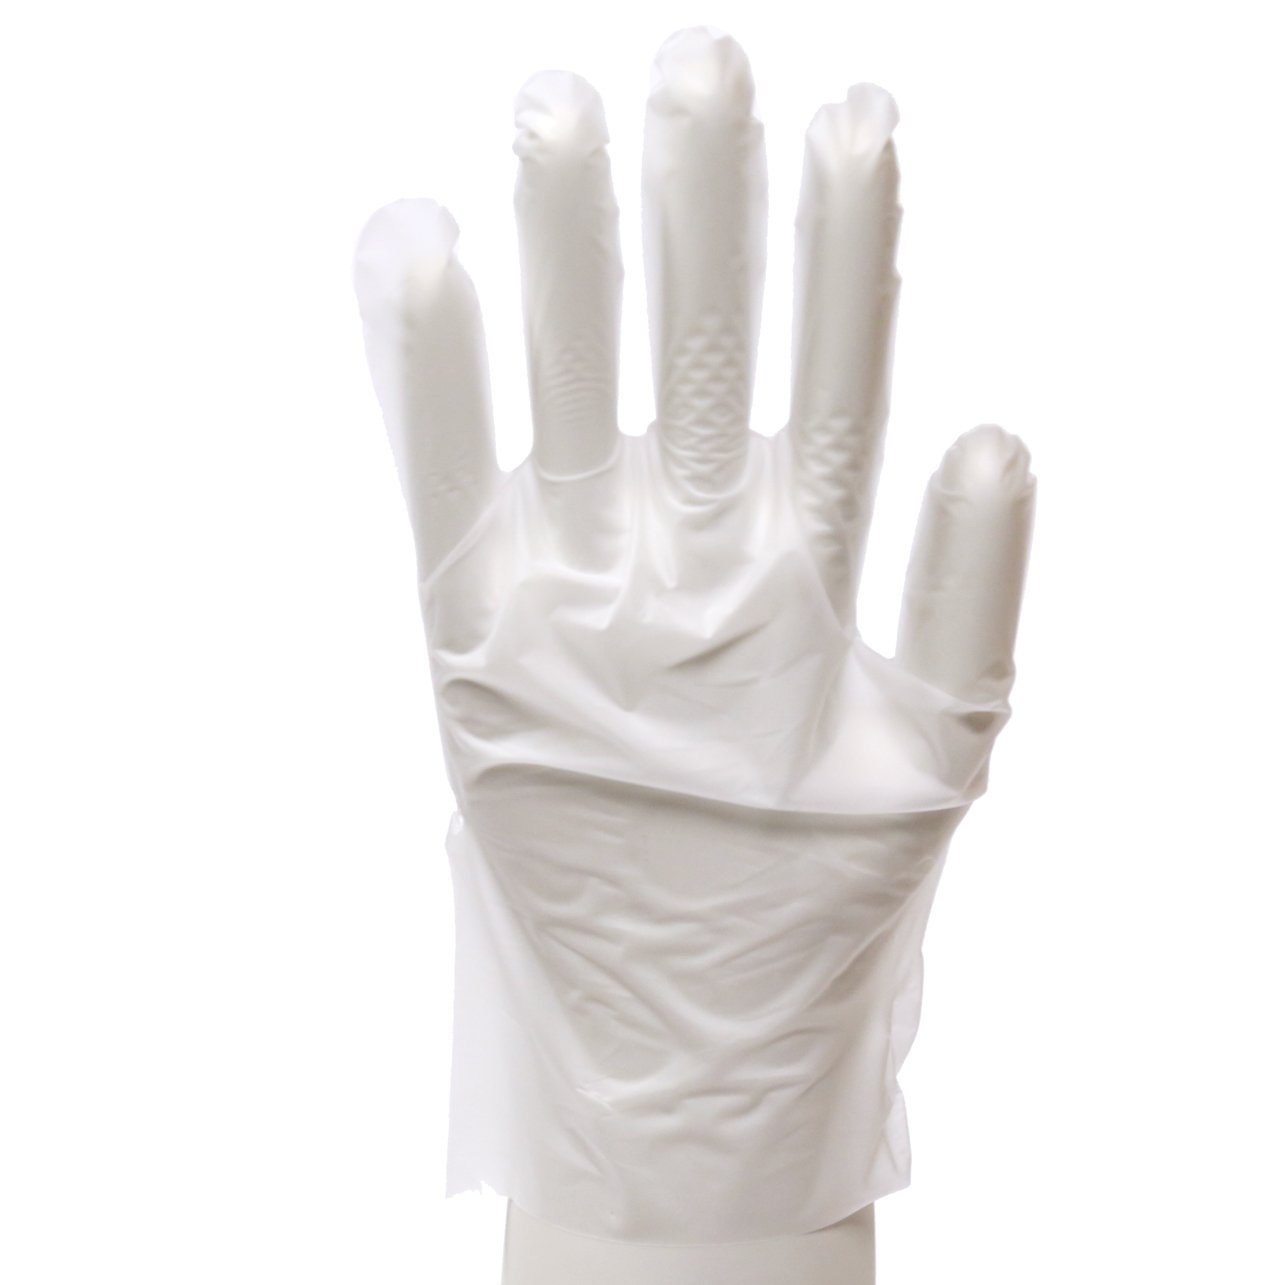 Daxwell Stretch Polyethylene Glove, Extra Large, White (10 Boxes of 100 Gloves)